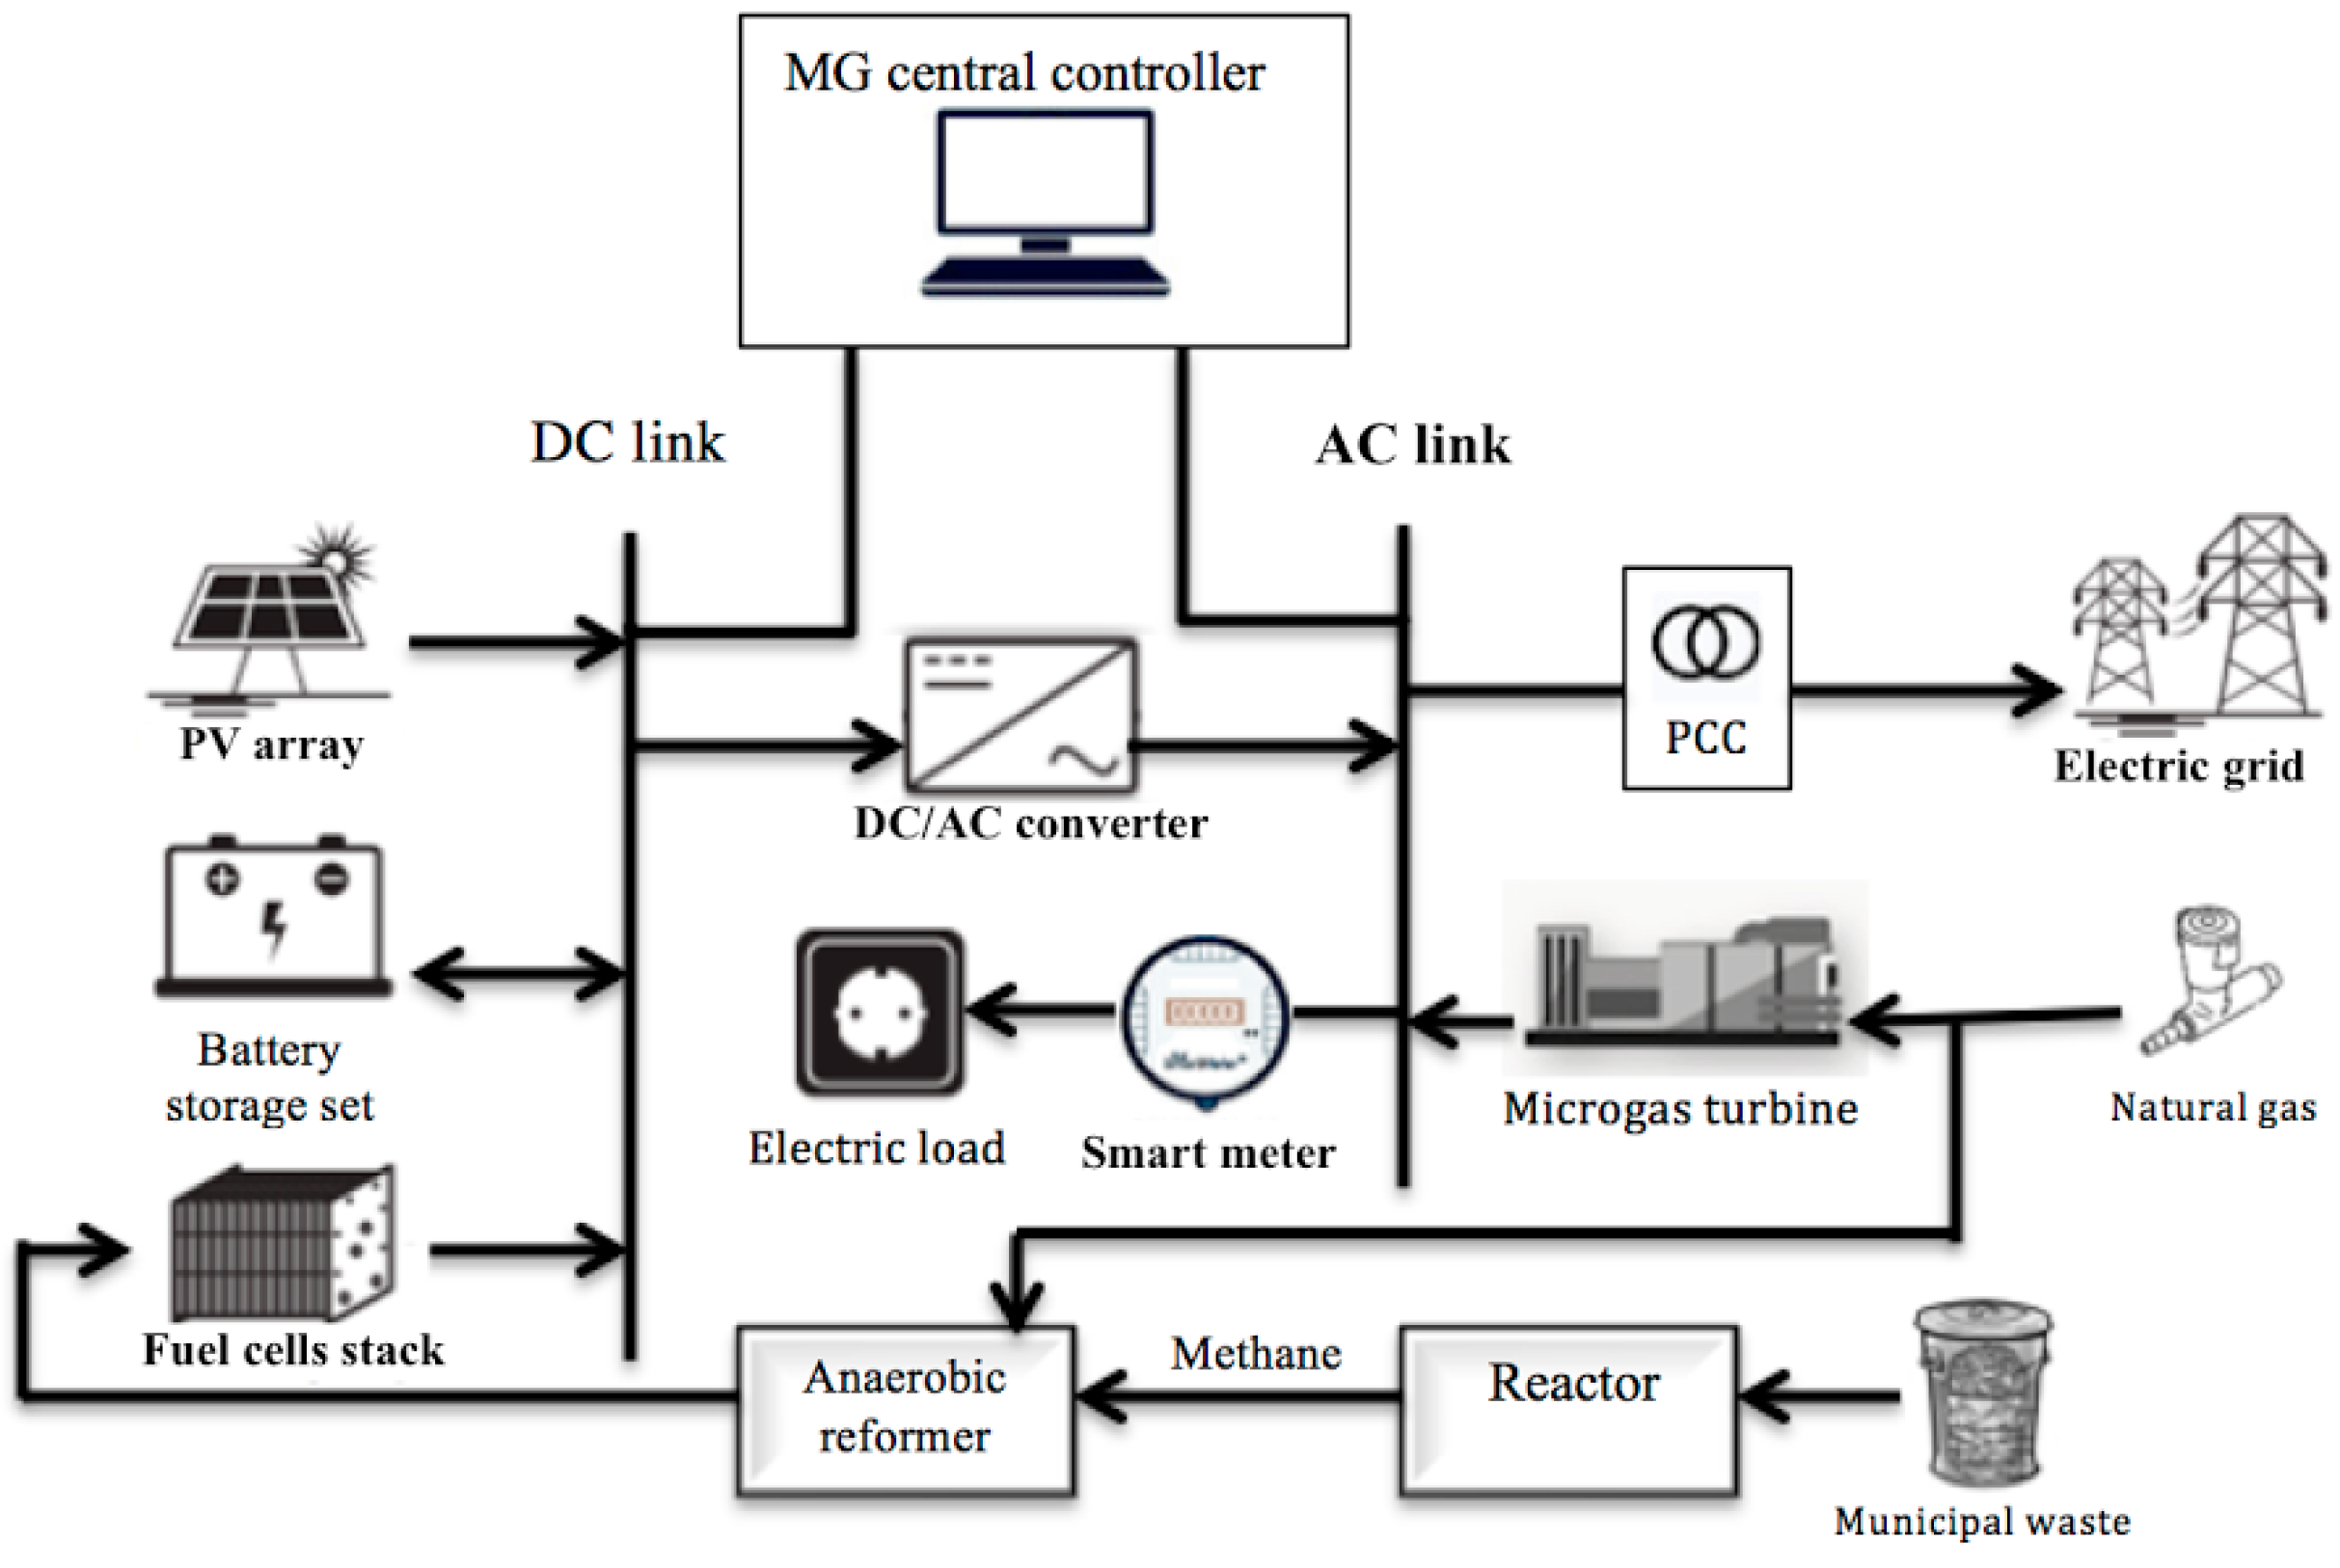 Energies Free Full Text Modeling A Hybrid Microgrid